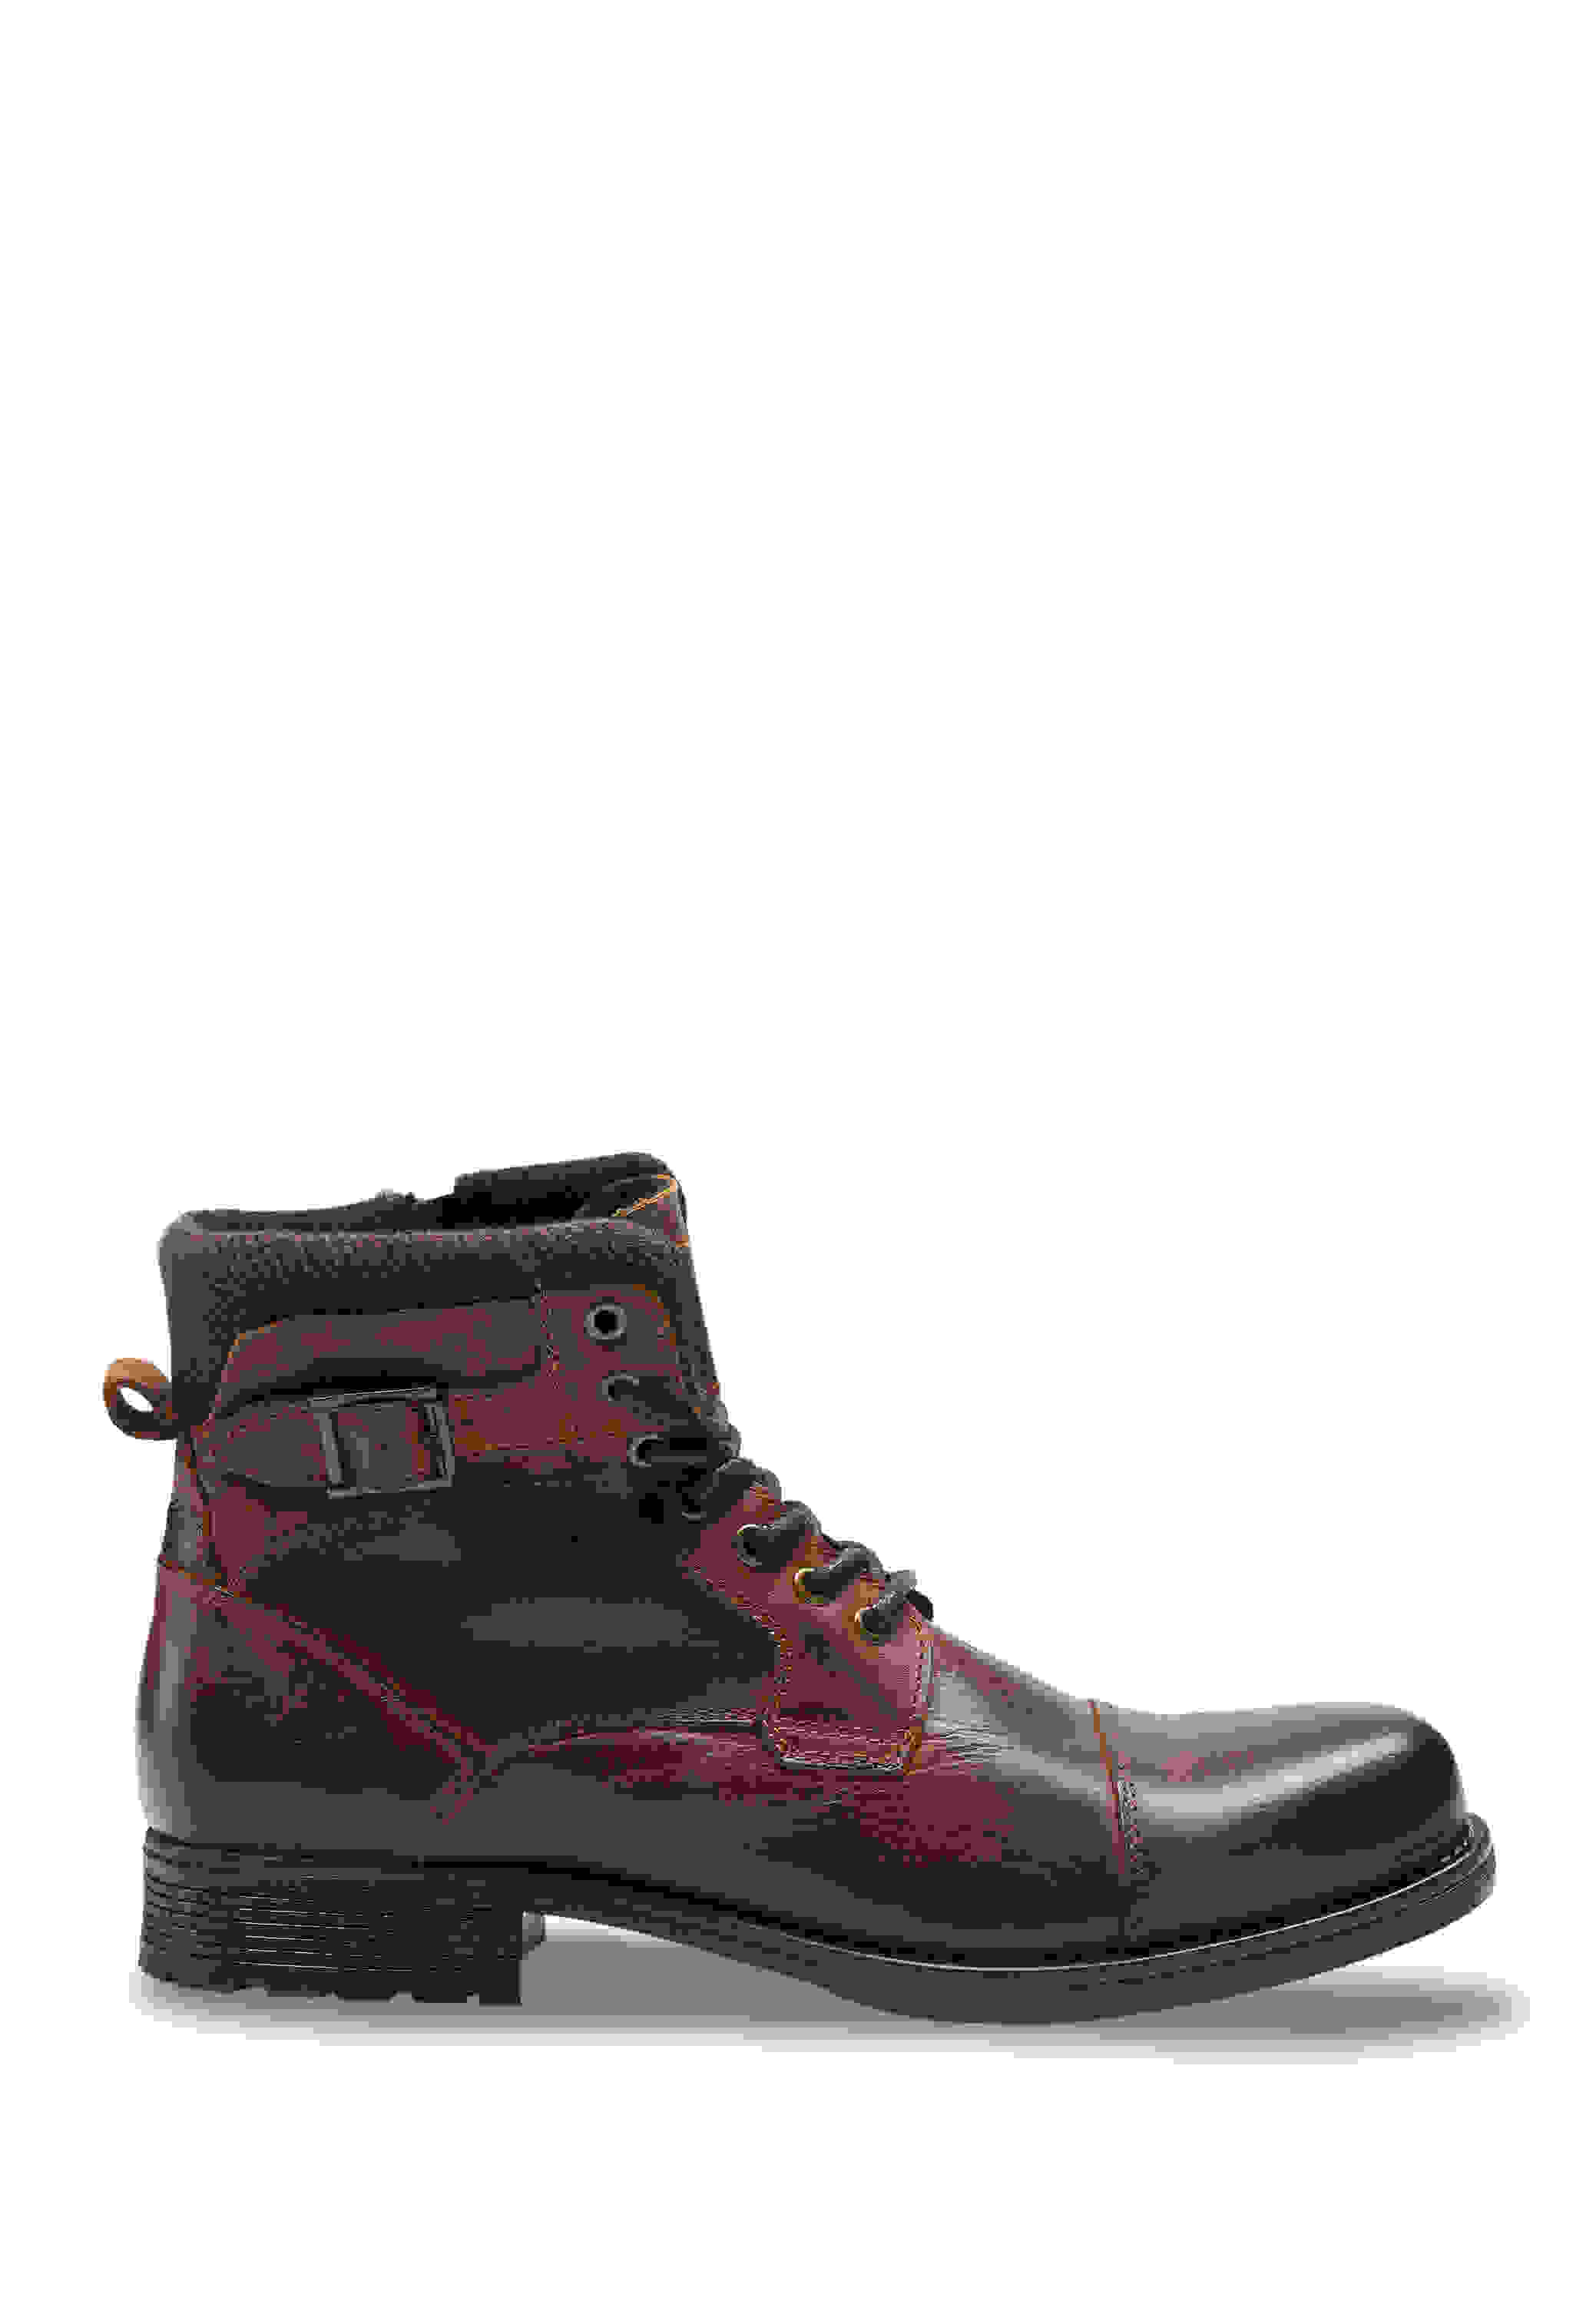 Schuh low boots w/o lining